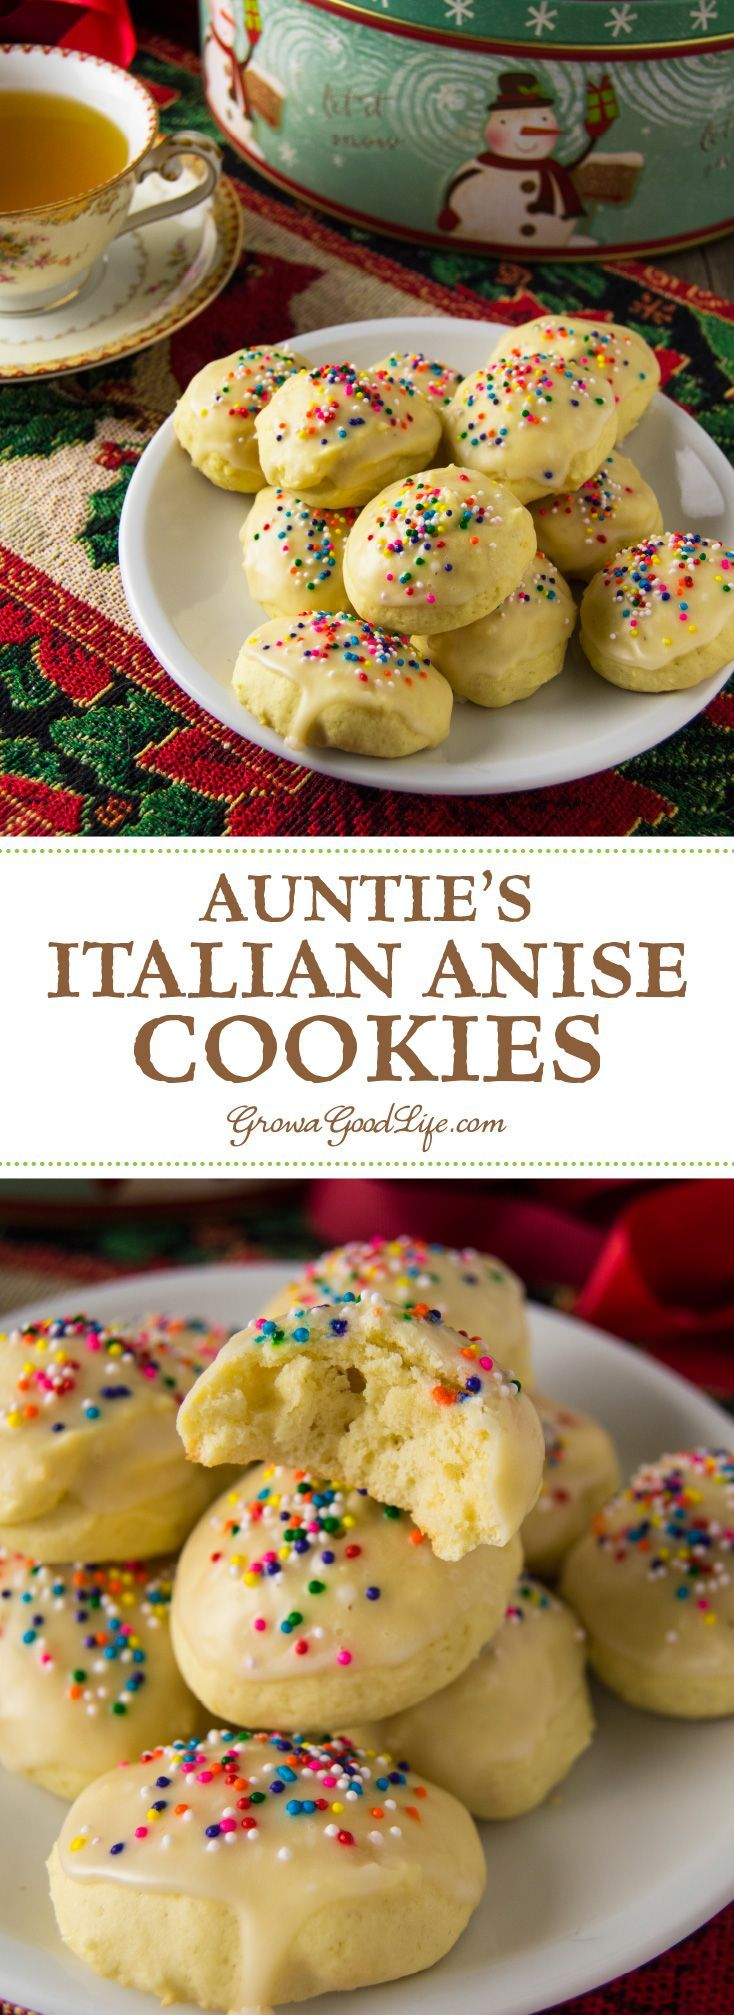 A bite of these Italian anise cookies will bring back any Italian-American's memories of childhood Christmases with family.